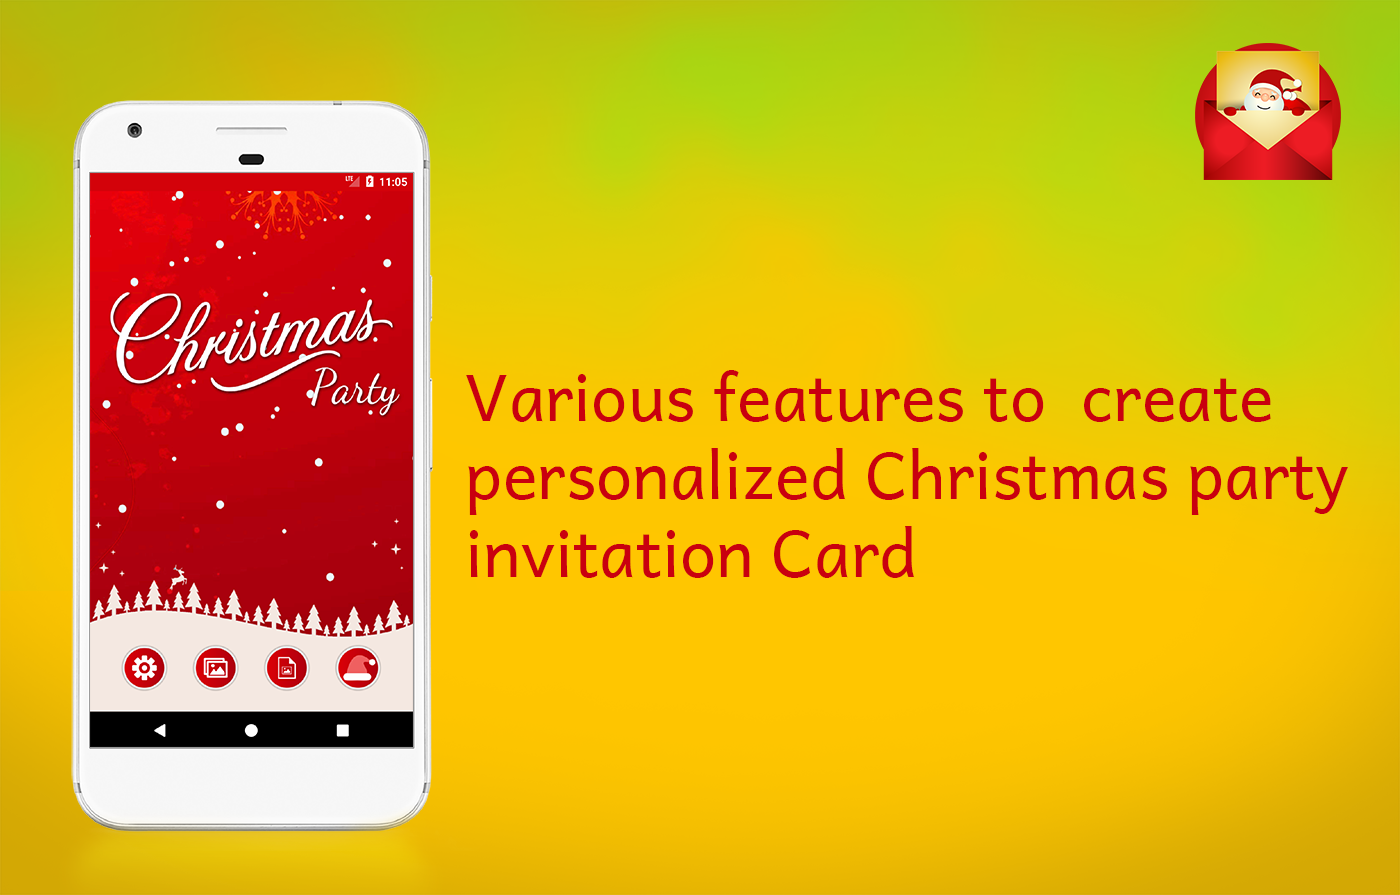 Christmas Party Invitations Card Maker - Android Apps on Google Play